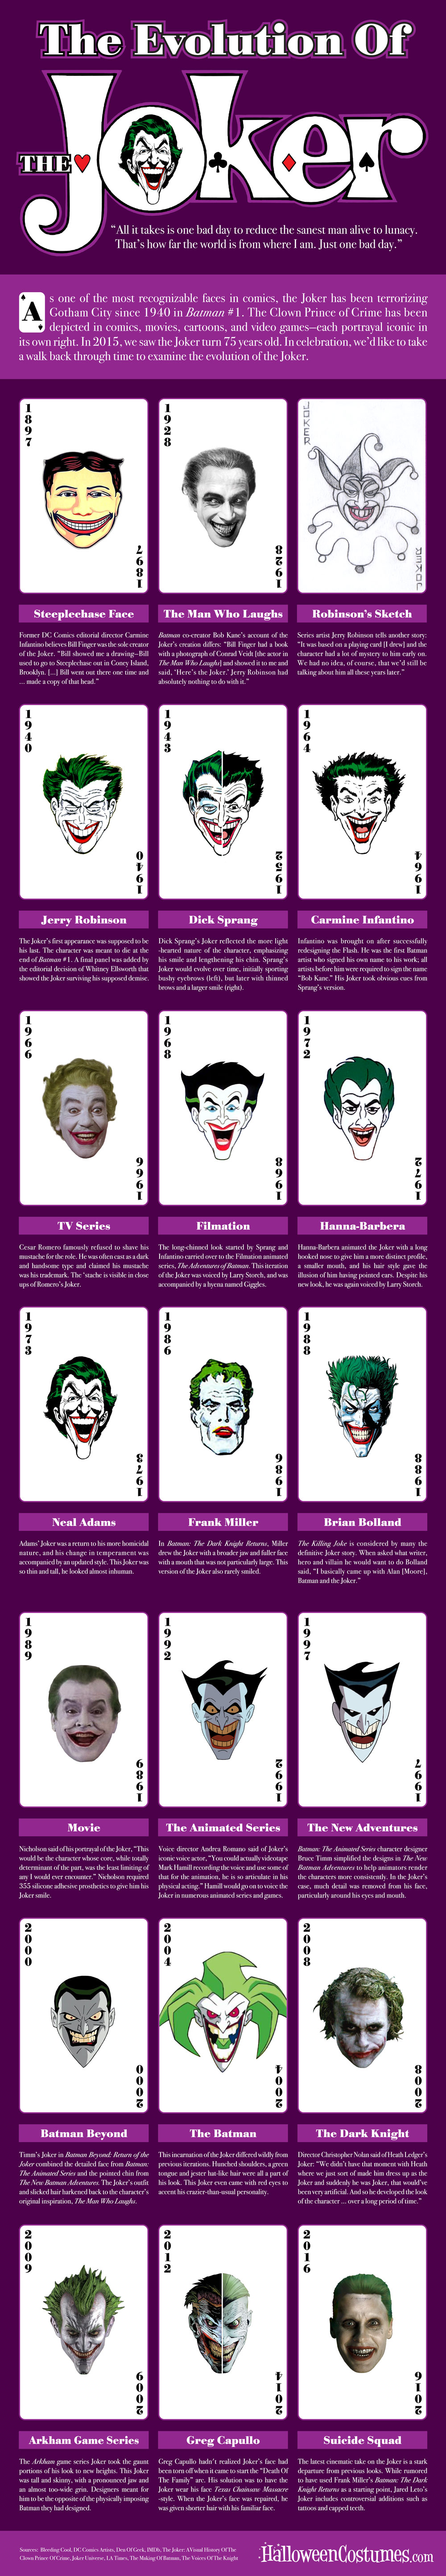 Evolution of the Joker Infographic